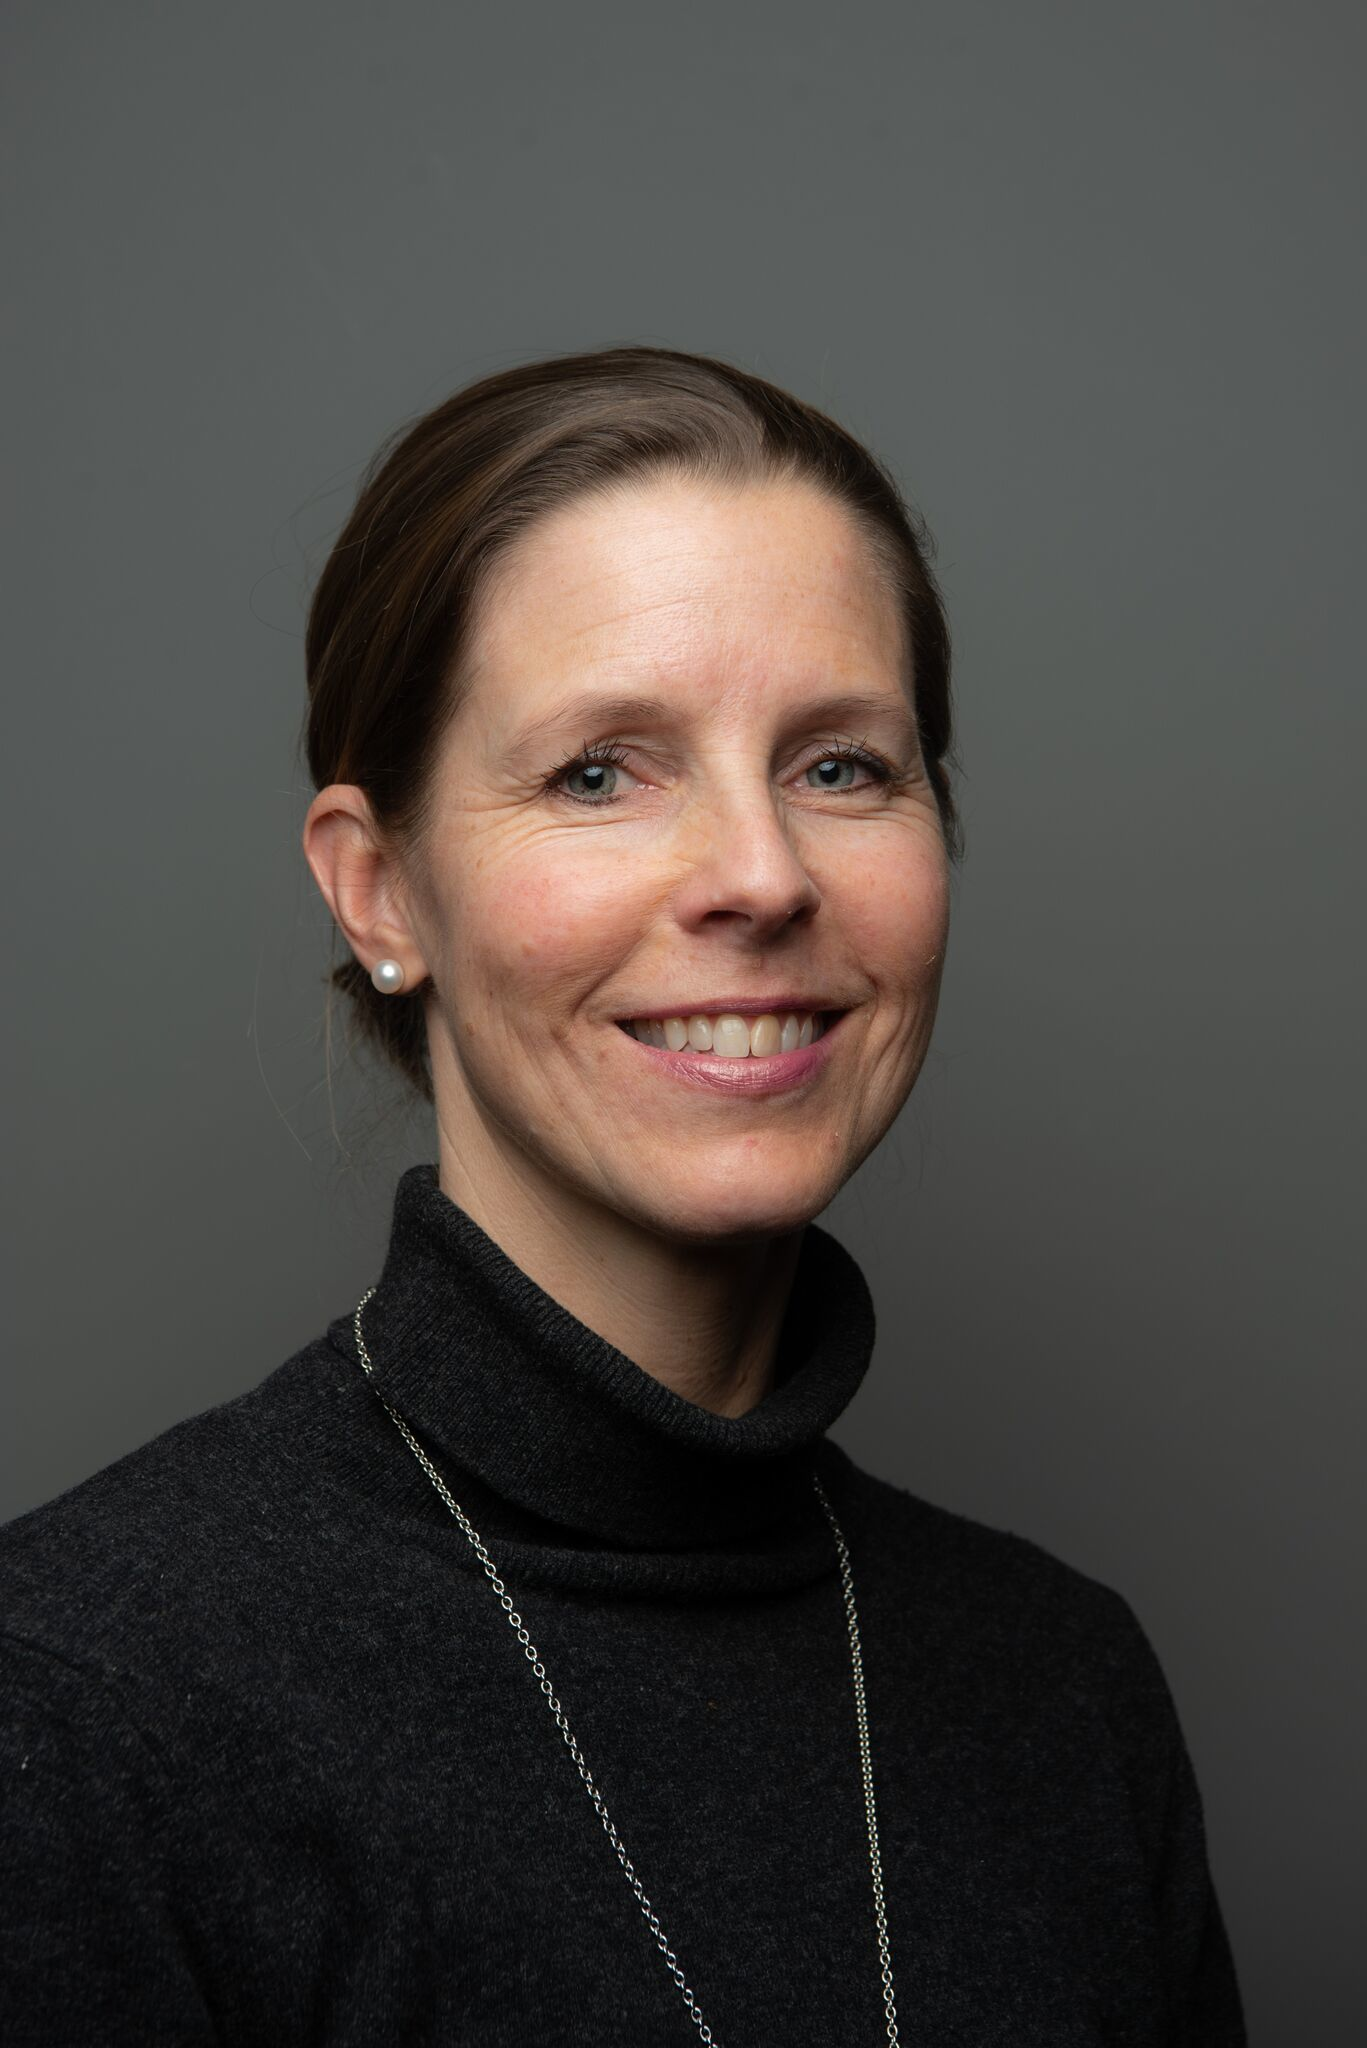 Image of Marianne Hågå Christophersen, Investment Analyst